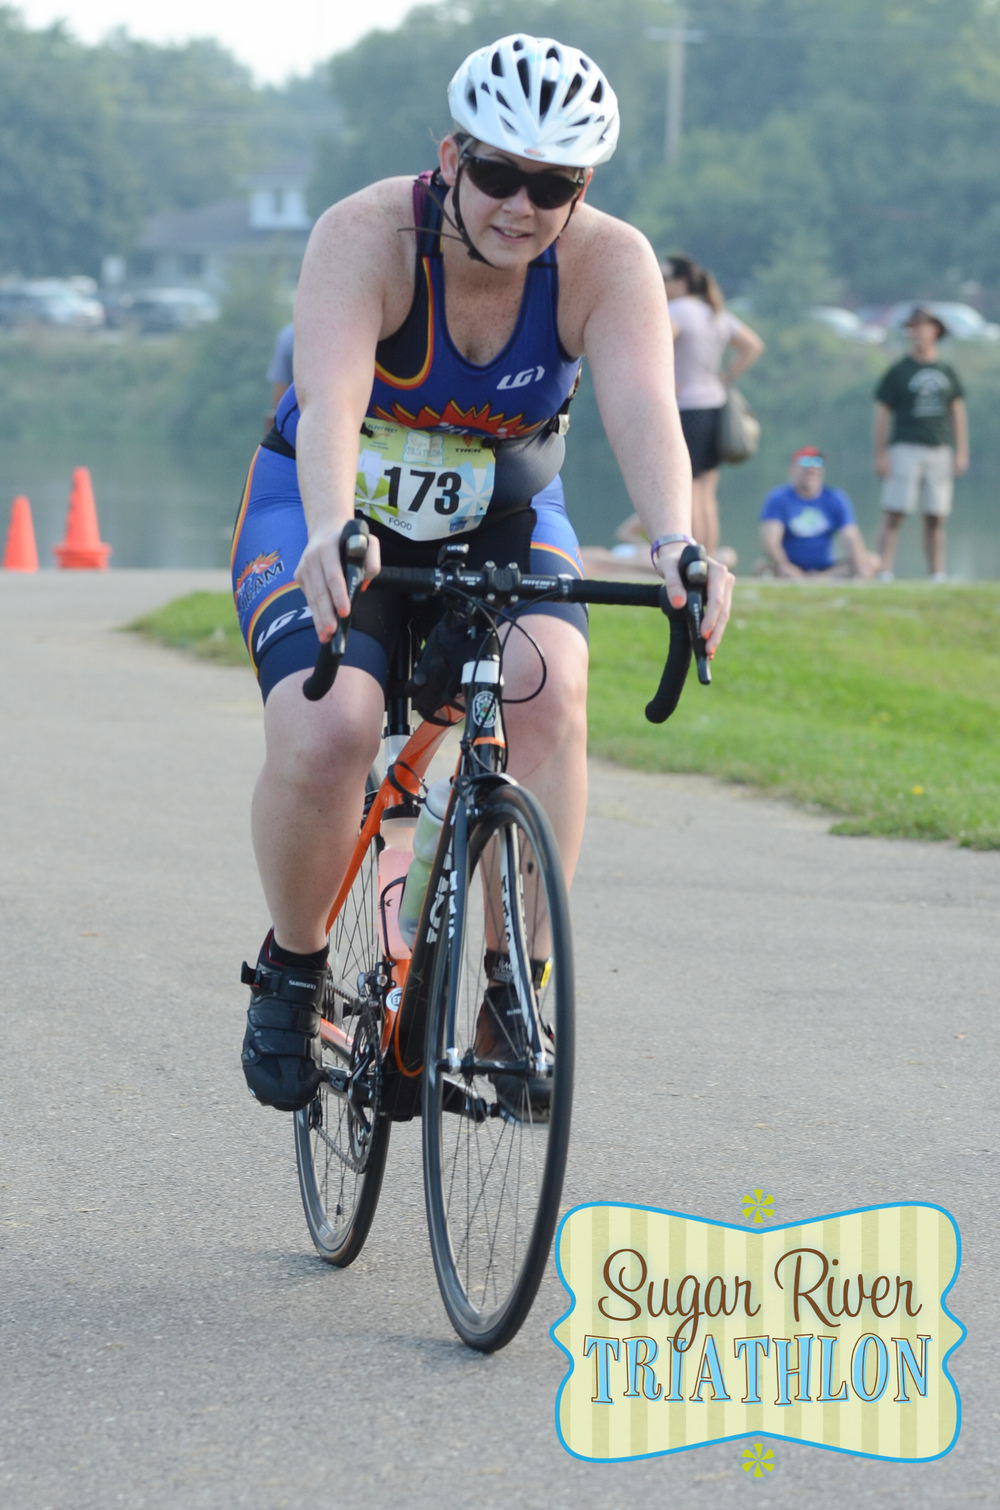 Bridget on the bike at the Sugar River Triathlon. (c) 2015 Focal Flame Photography | Photo credit: Mark Olson on behalf of Focal Flame Photography